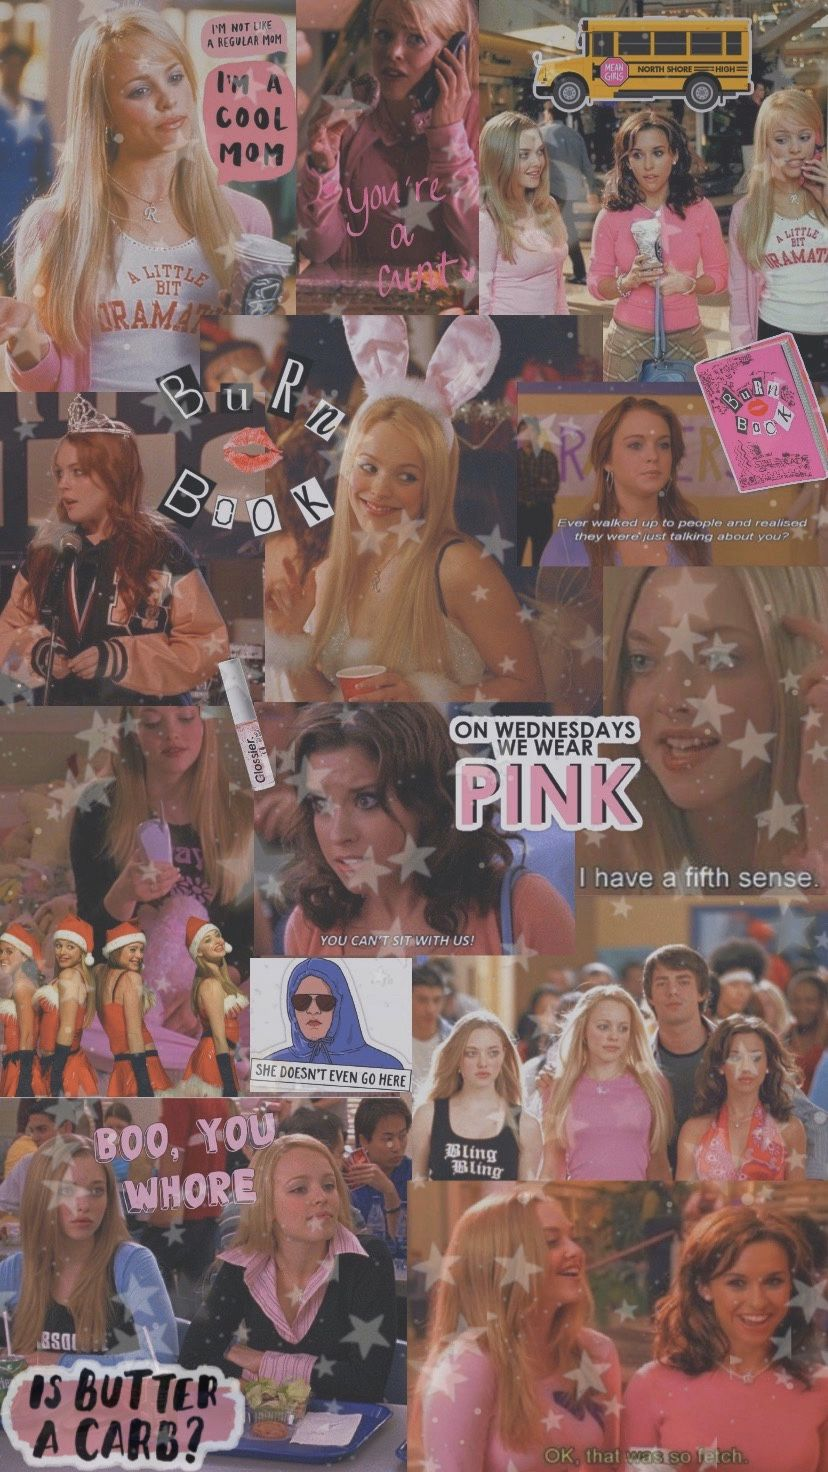 Mean Girls wallpaper!